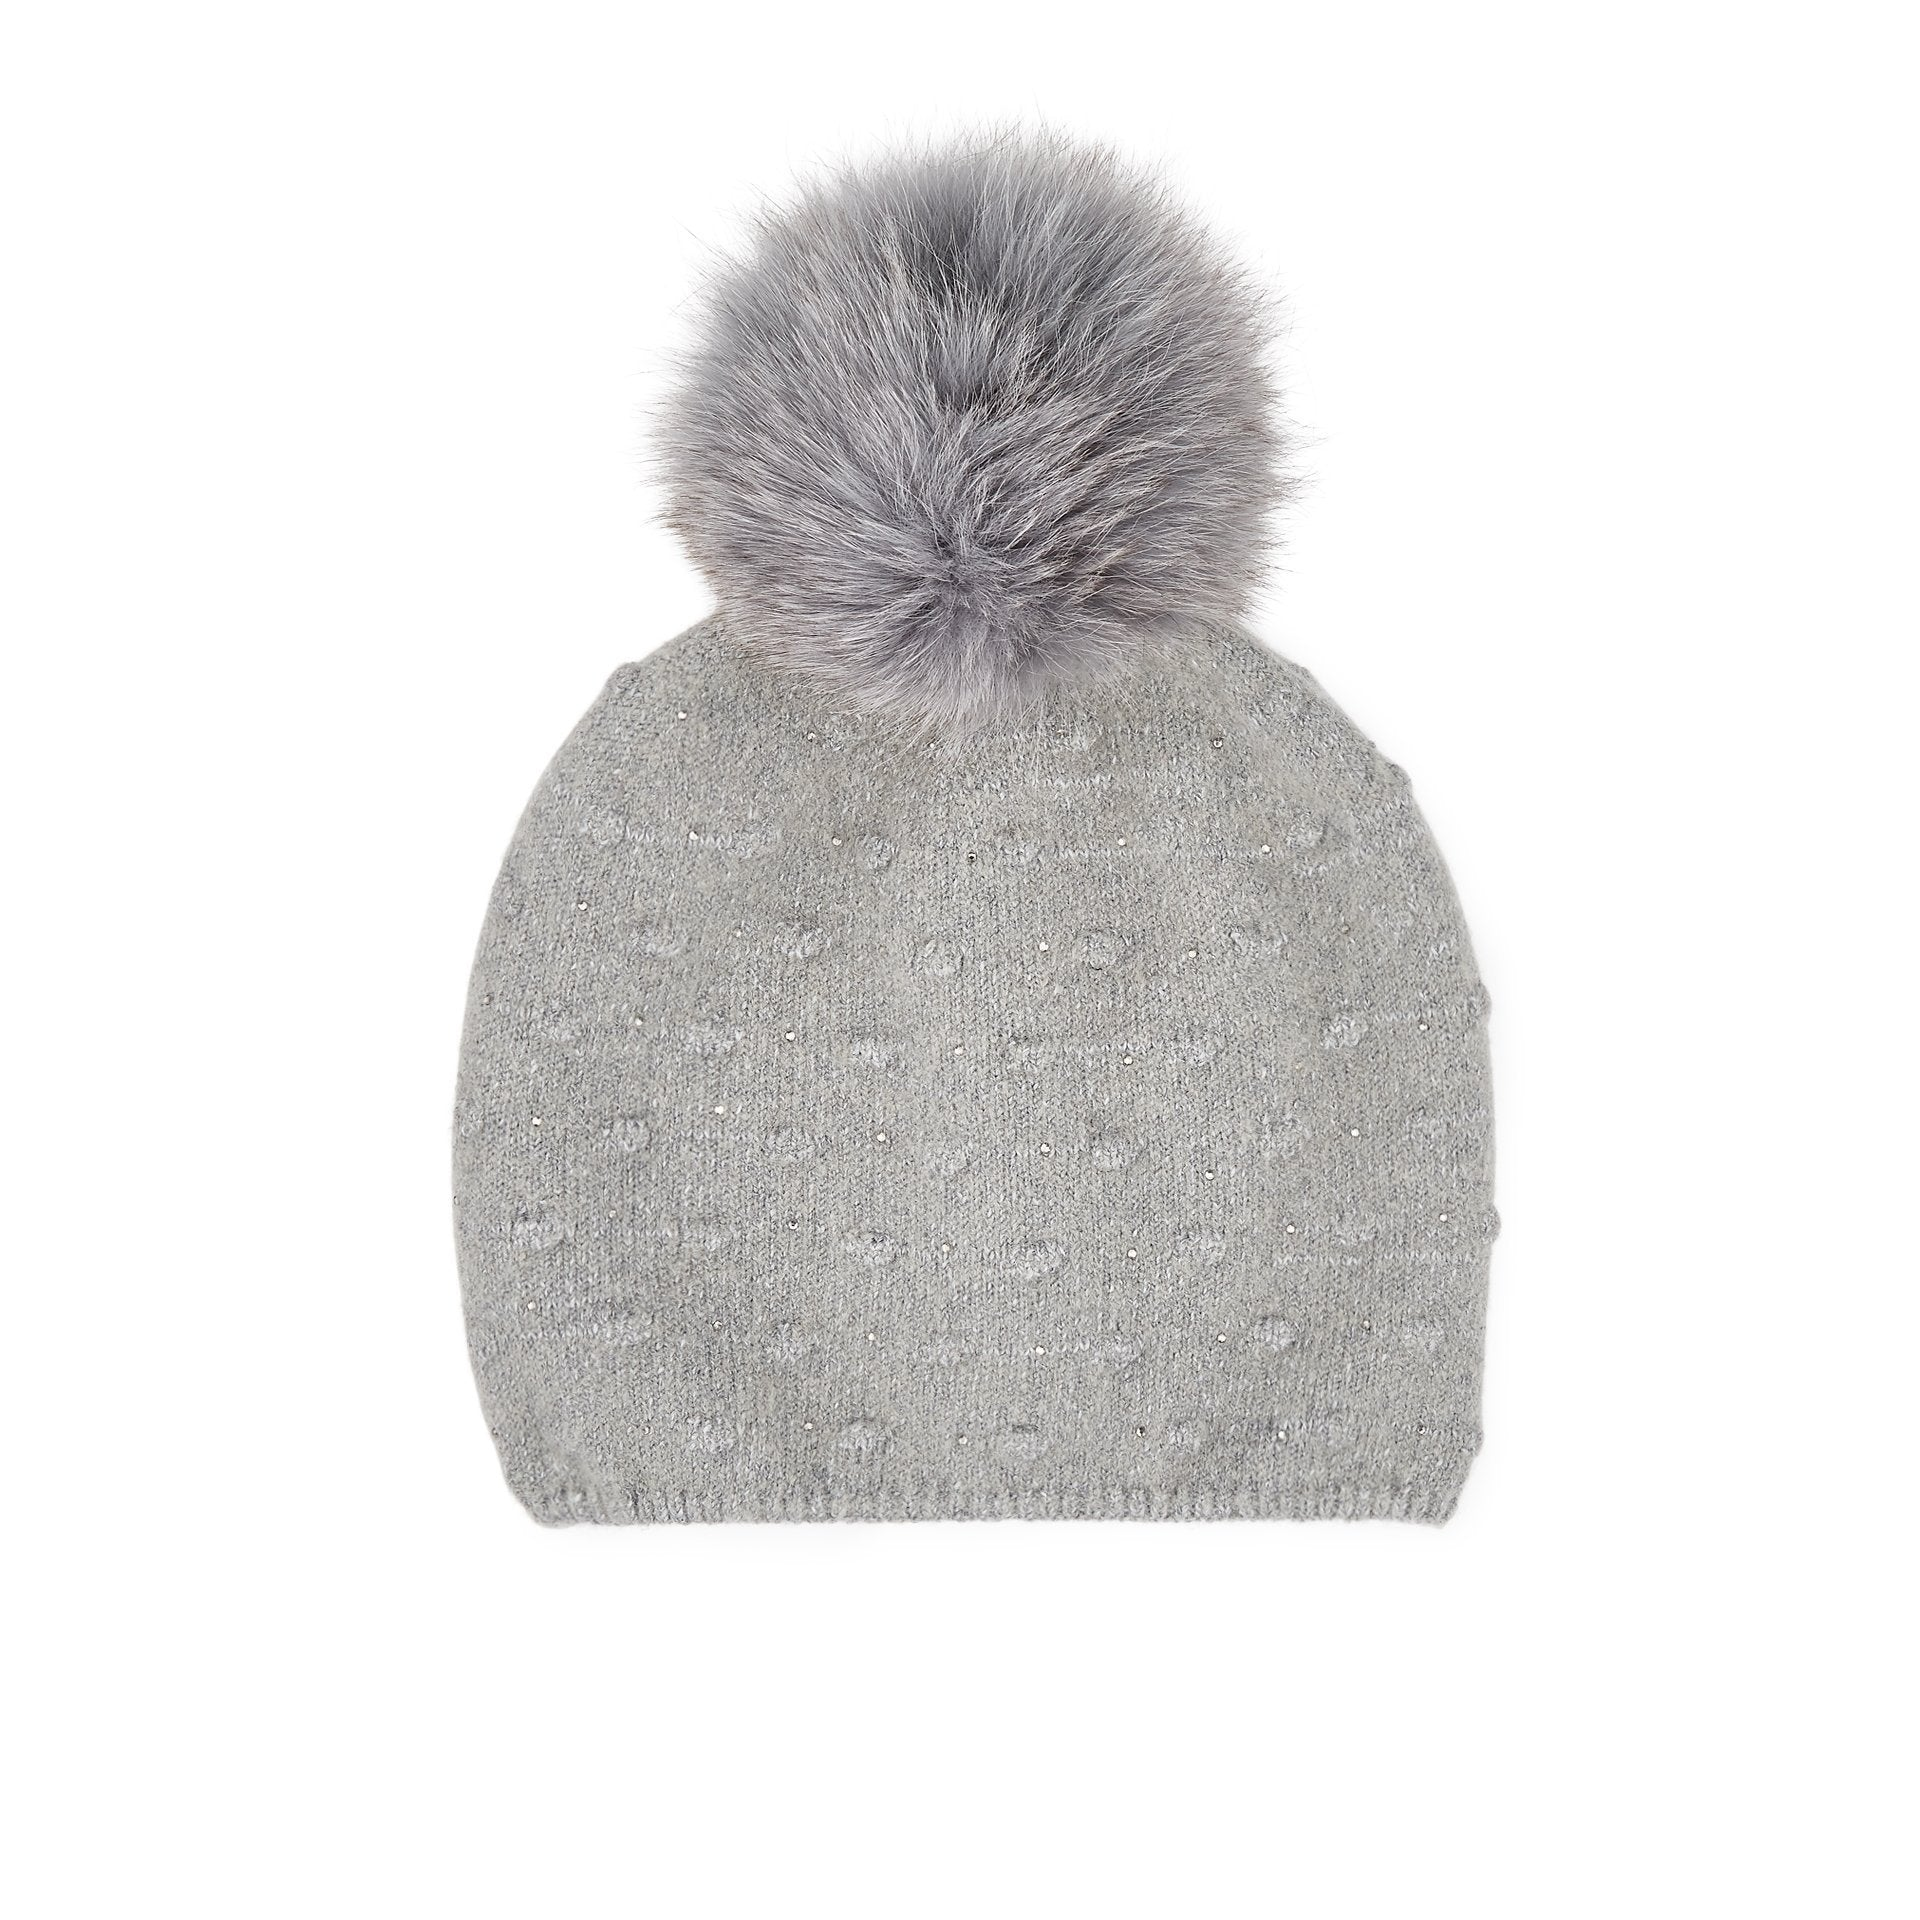 Banff sparkle beanie - Women's Beanies - Lock & Co. Hatters London UK